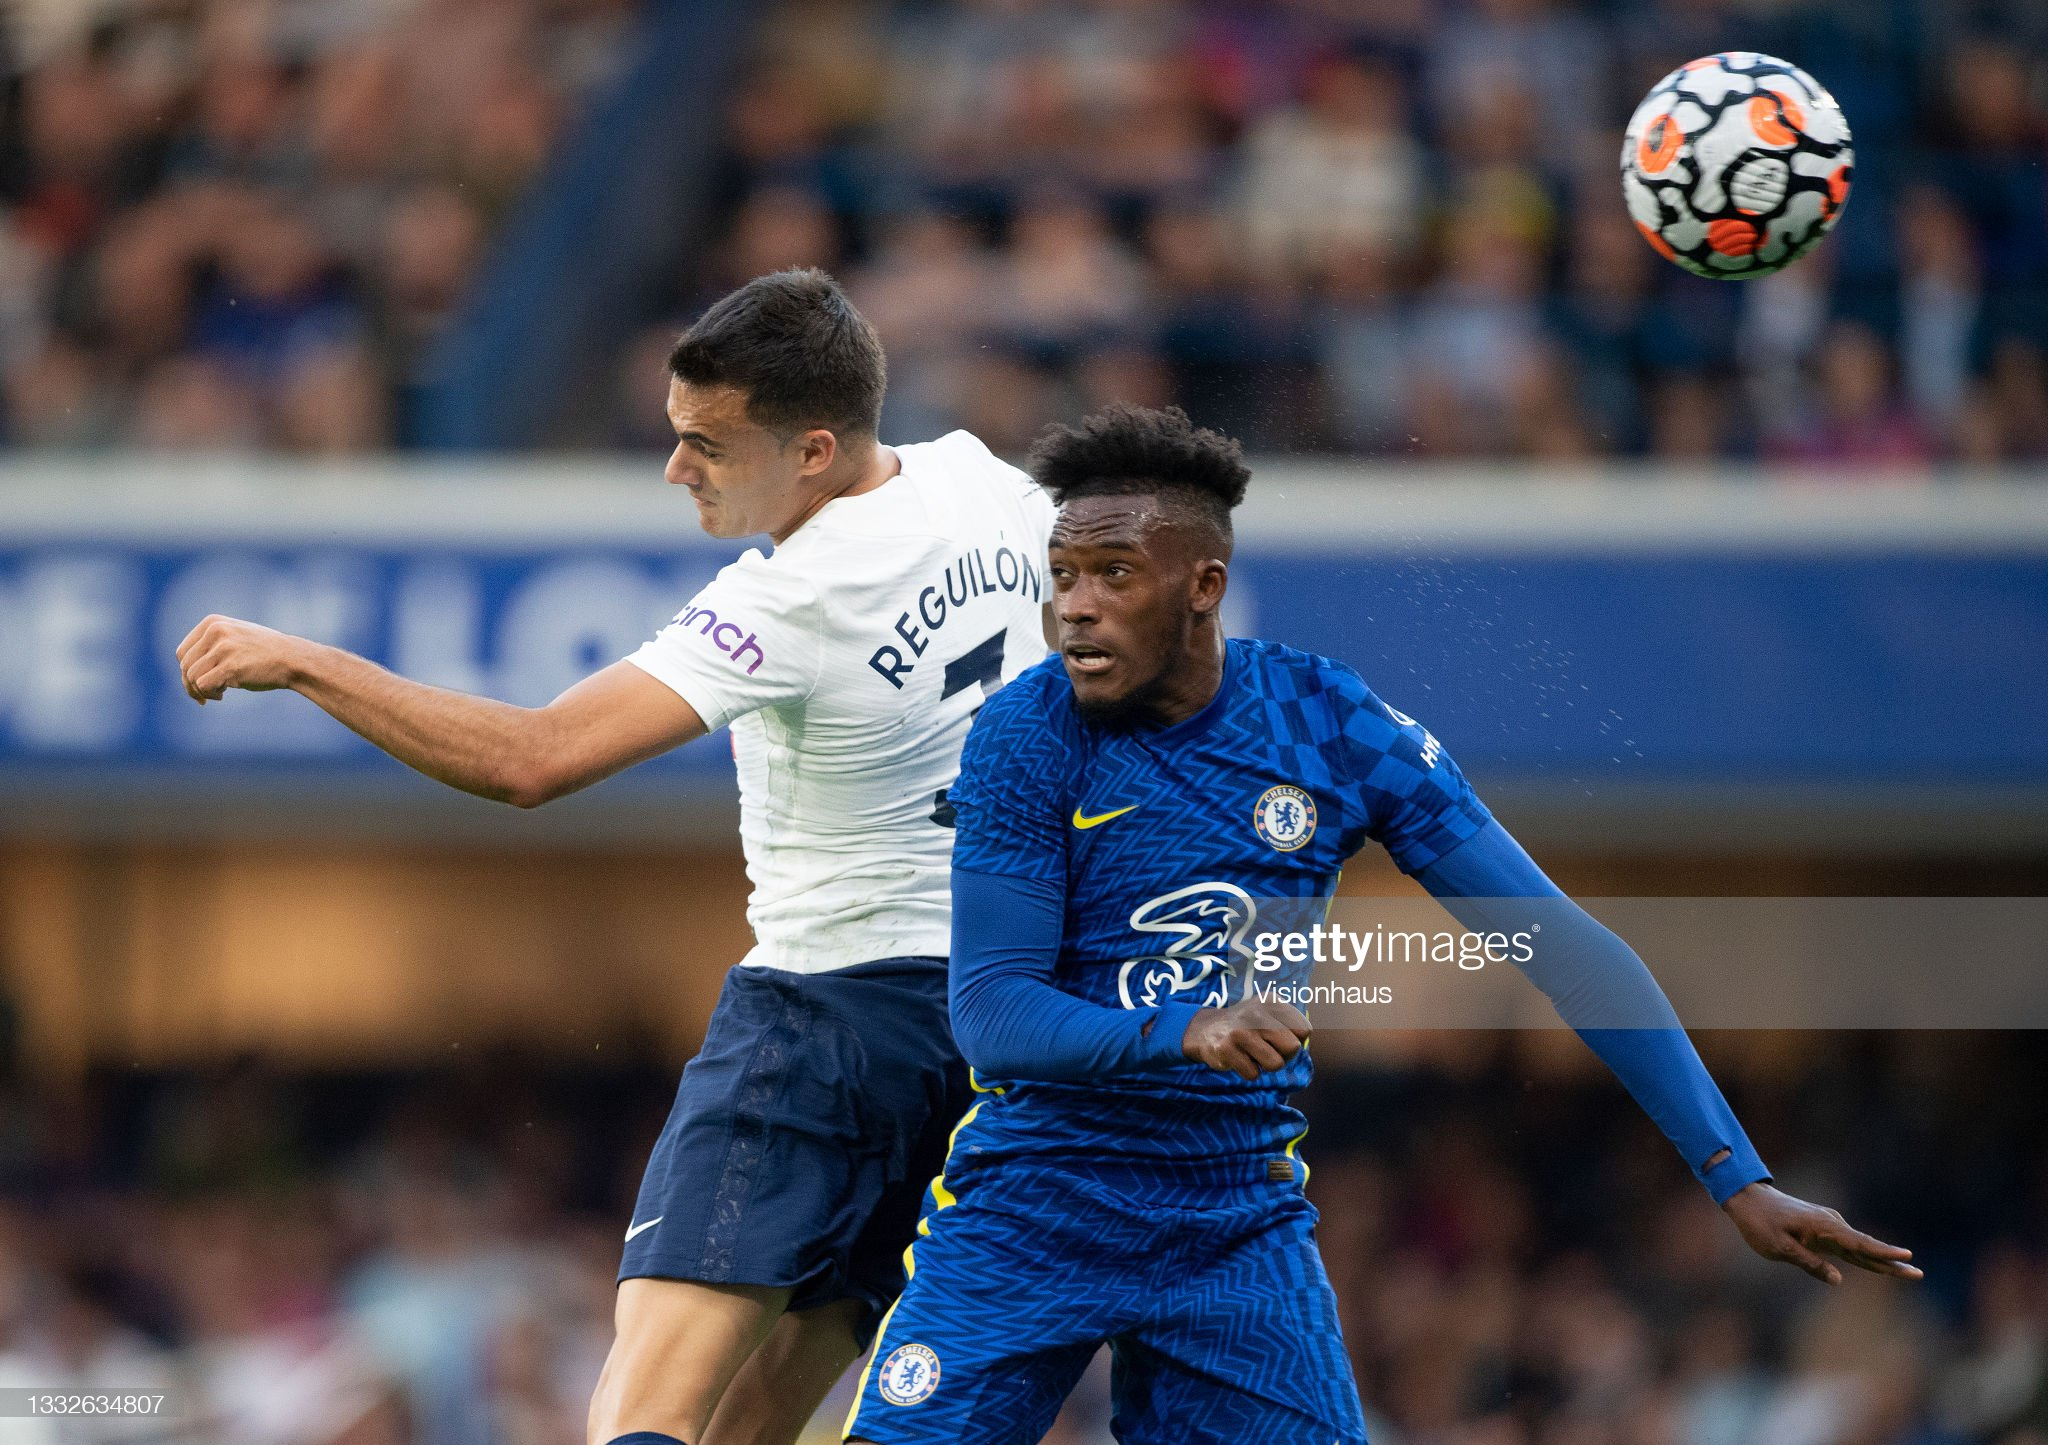 Tottenham vs Chelsea Preview, prediction and odds